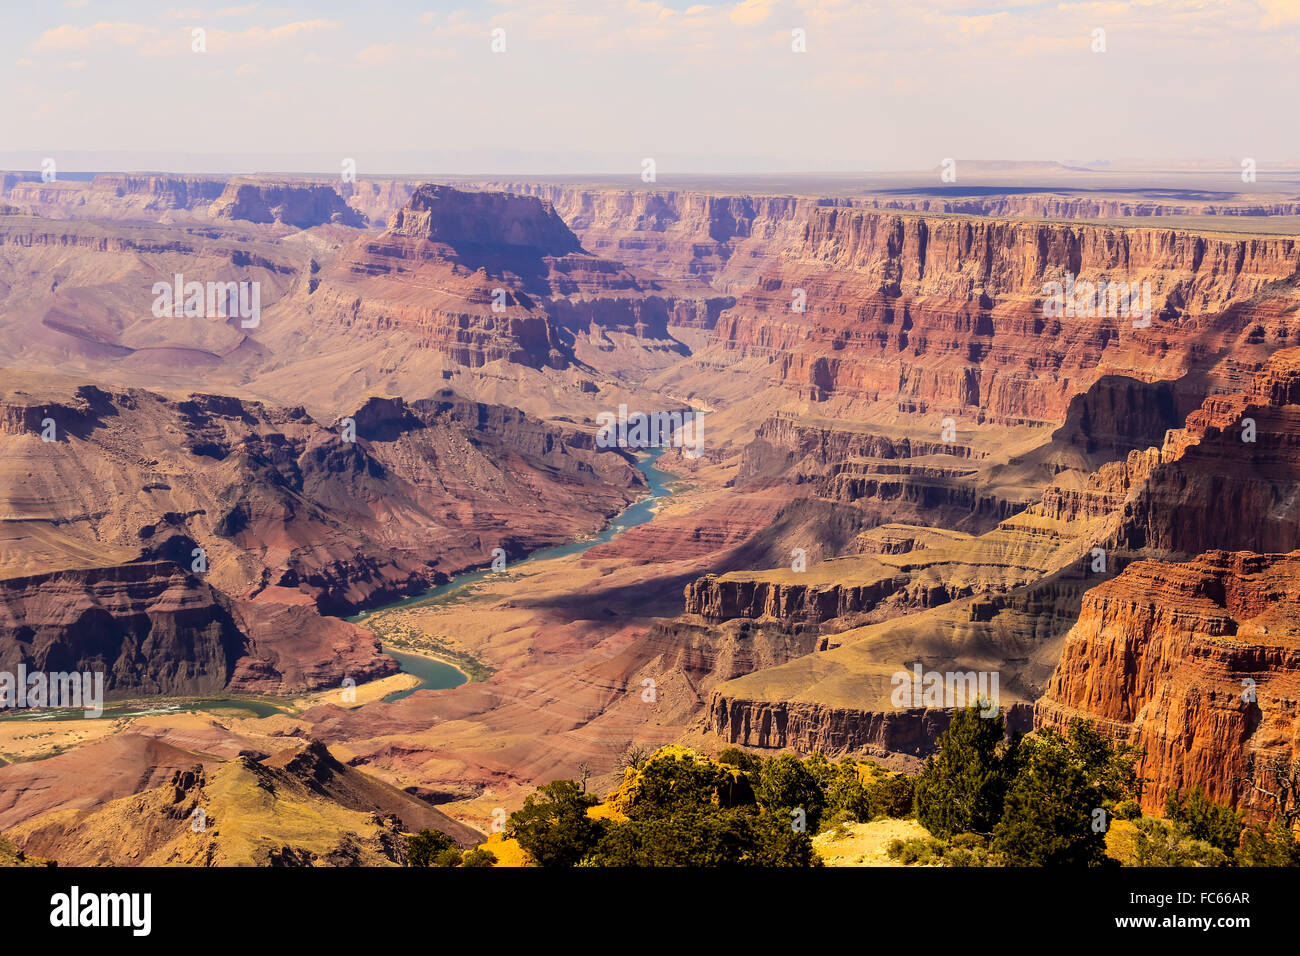 Grand Canyon panorama - Stock Image